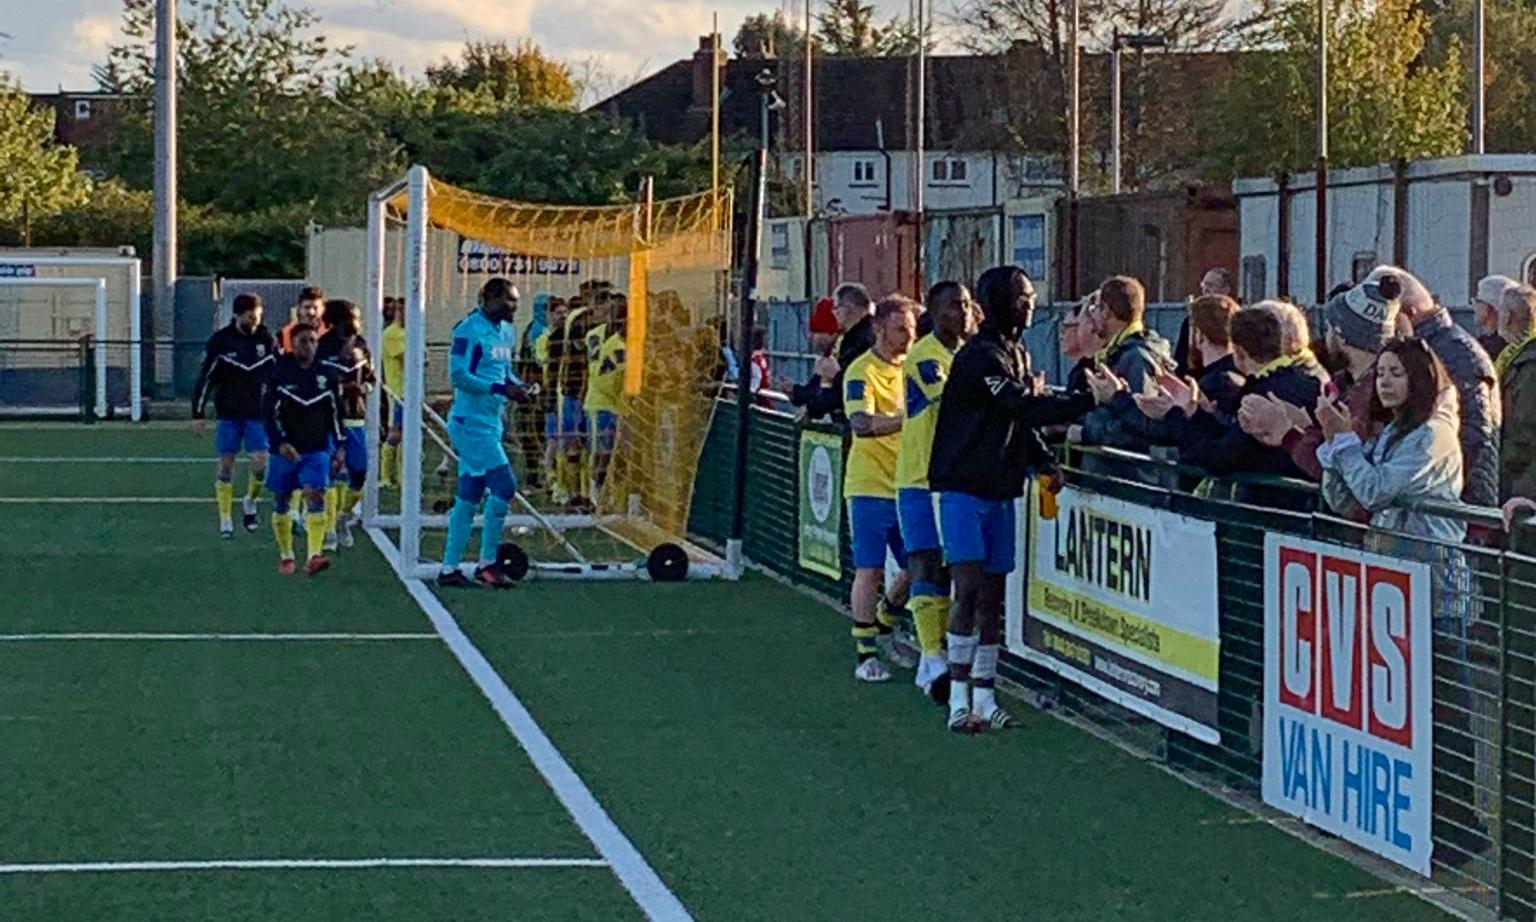 Haringey players walk off after racism allegations in Yeovil FA Cup tie